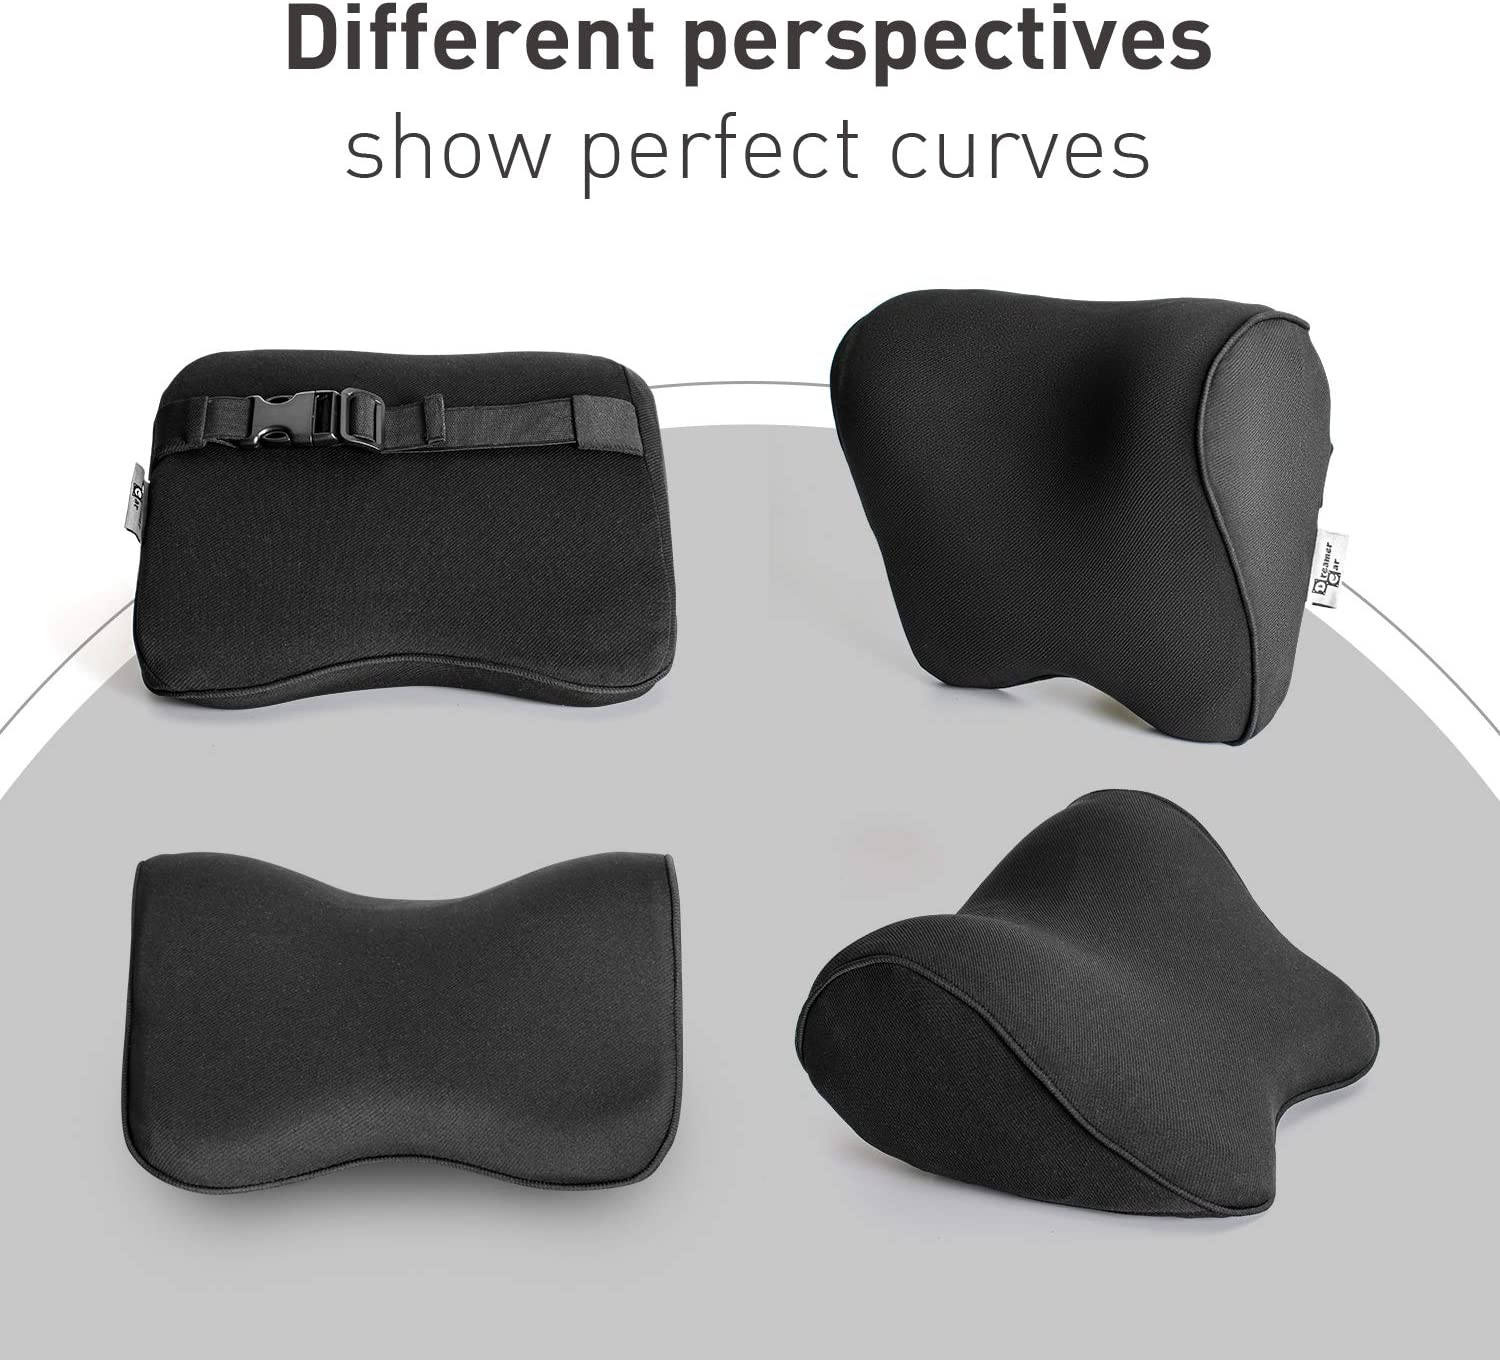 Dreamer Car Pillow for Driving Seat with Adjustable Strap Balanced Softness Memory Foam Neck Pillow Car Seat Designed to Relieve Neck Pain and Muscle Tension,Black